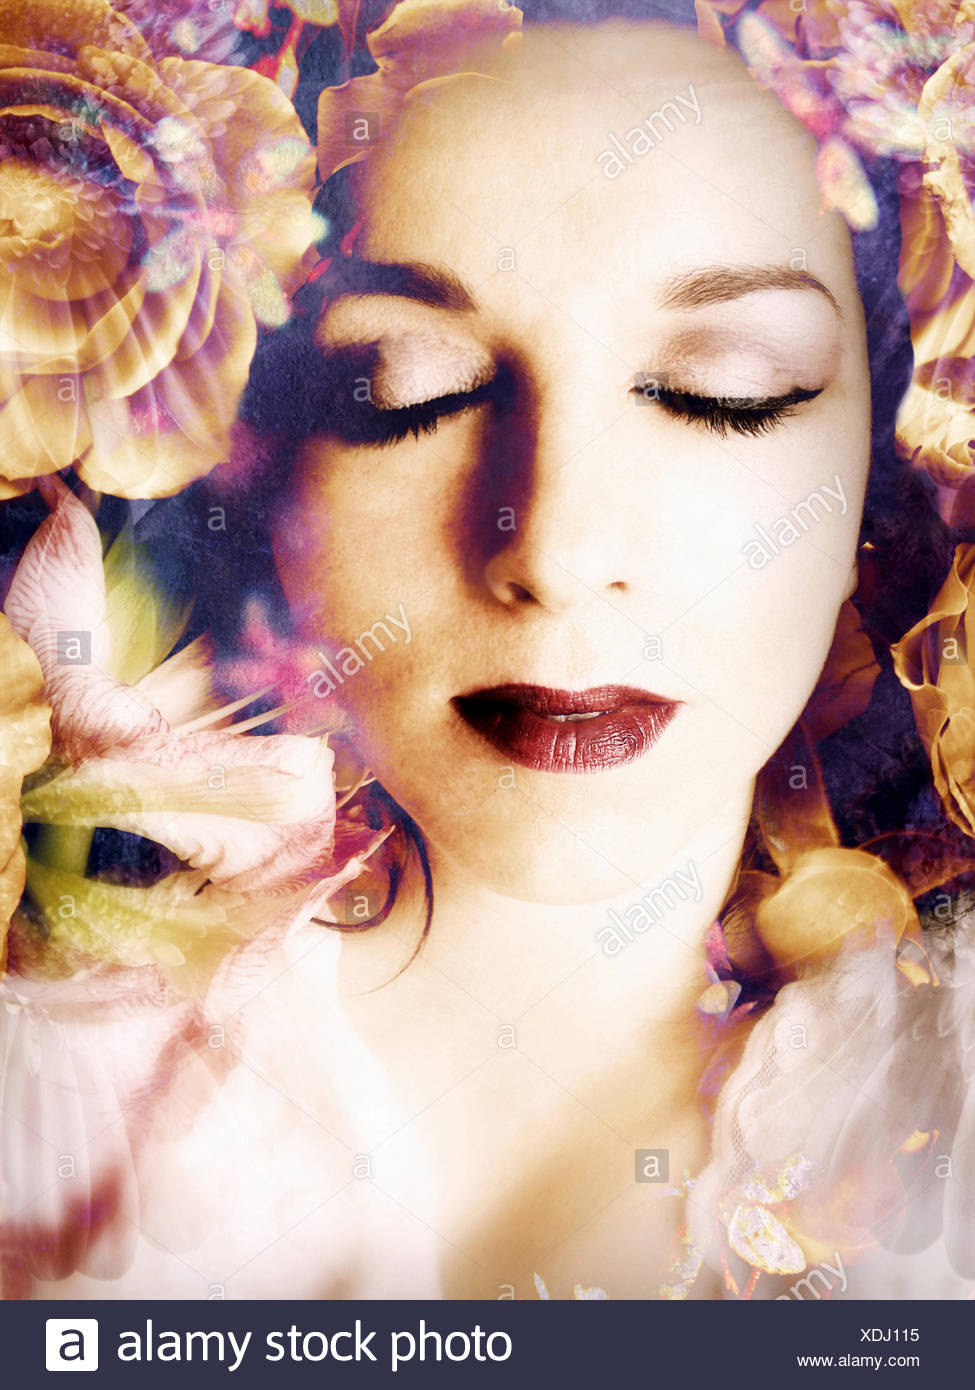 poetic montage of a portrait with flowers, Stock Photo